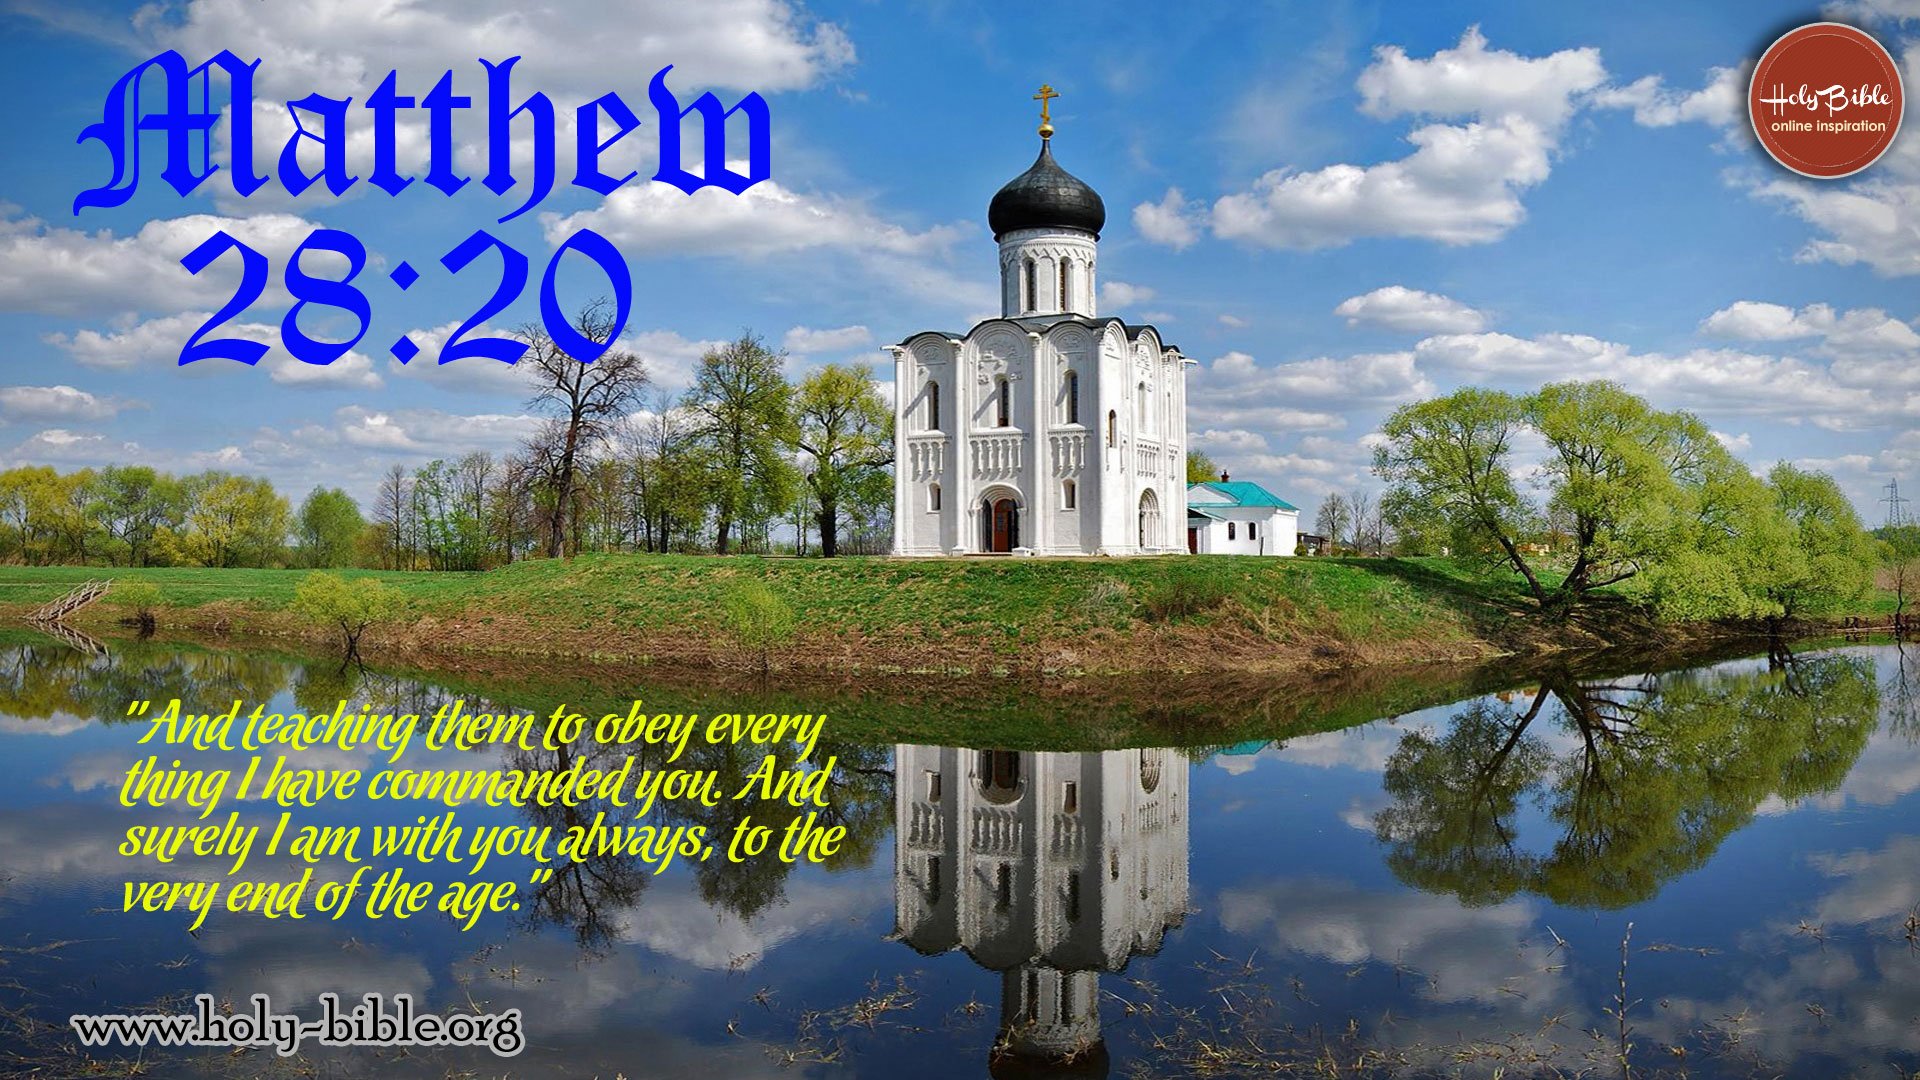 Bible Verse of the day - Matthew 28:20